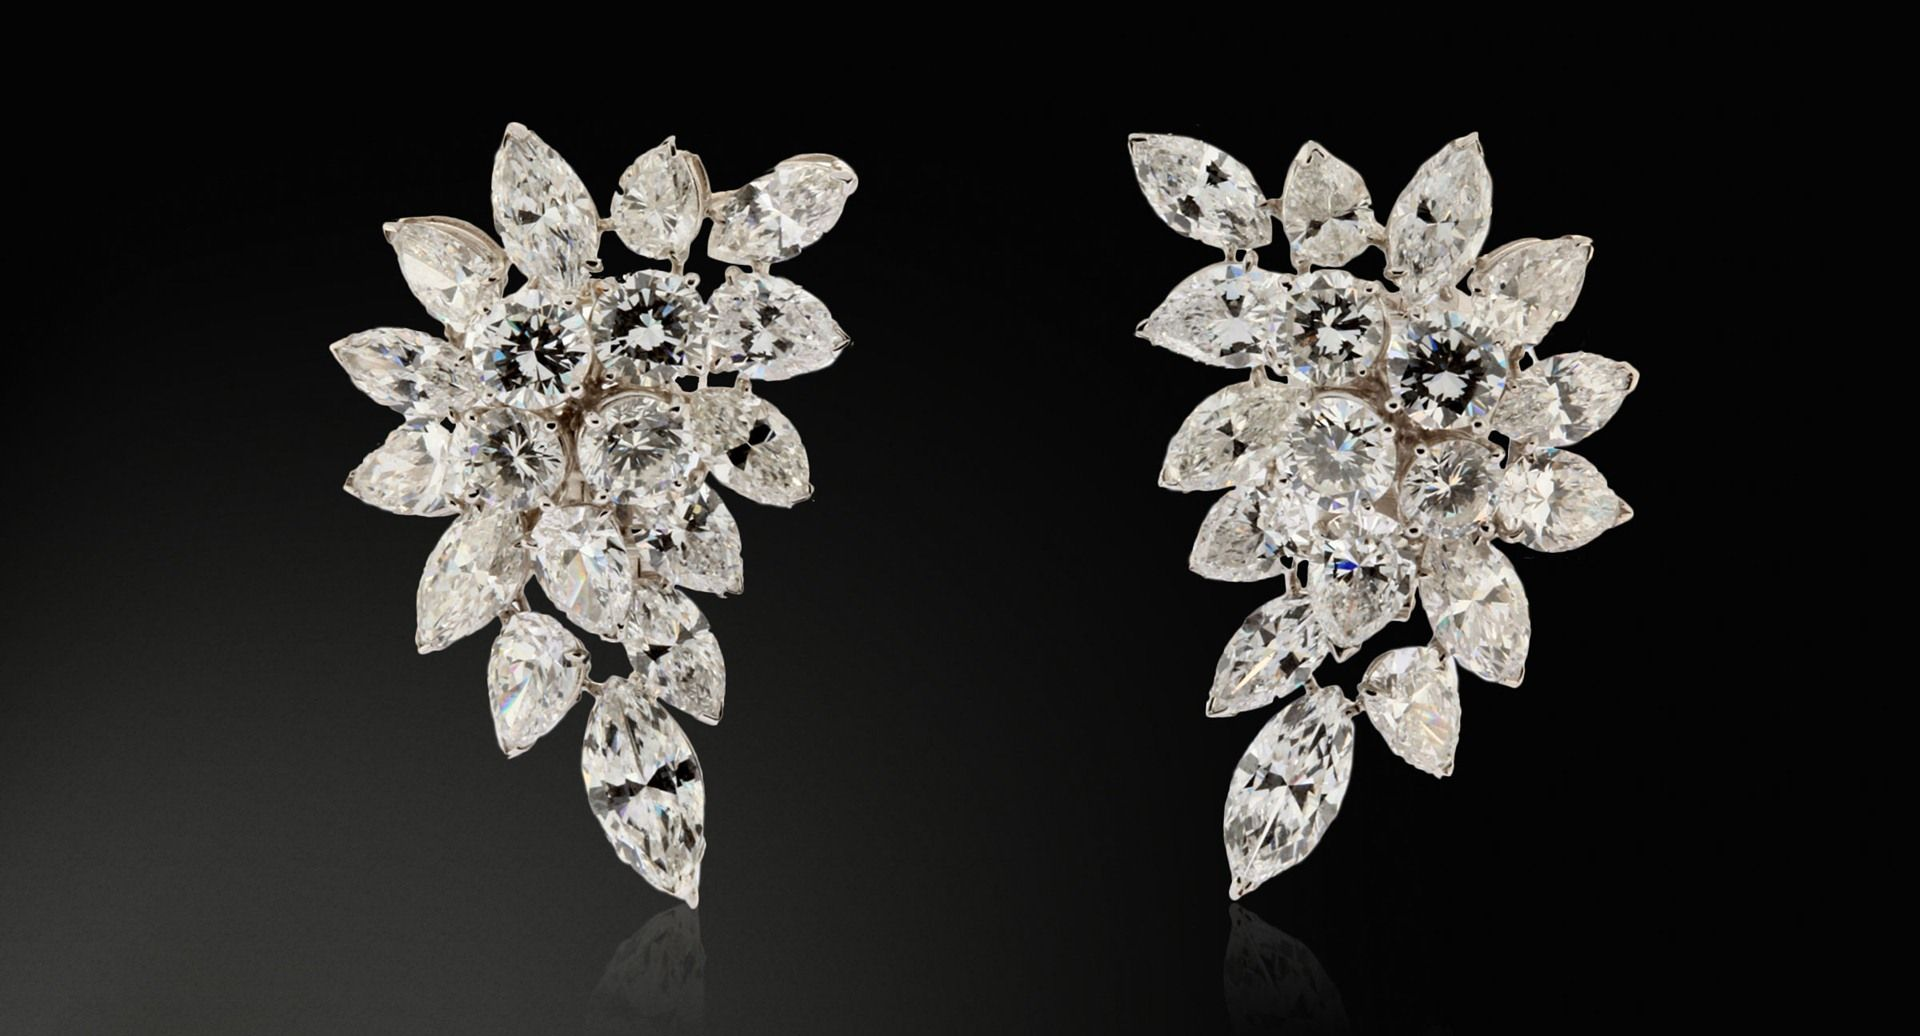 Van Cleef & Arpels white marquise- cut diamonds earrings